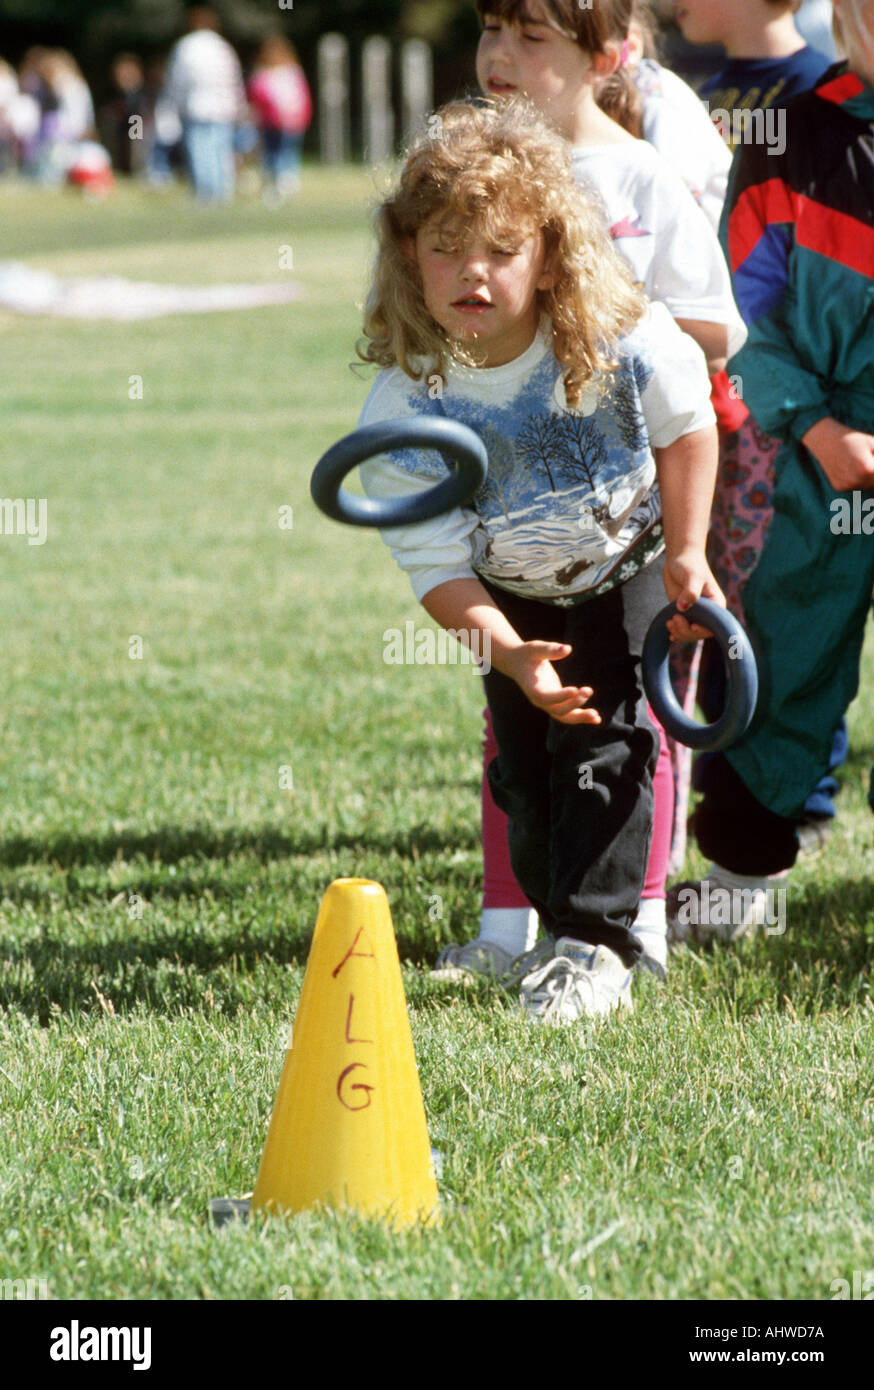 Elementary Field Day Has Activities To Help Kids Develop Their Motor